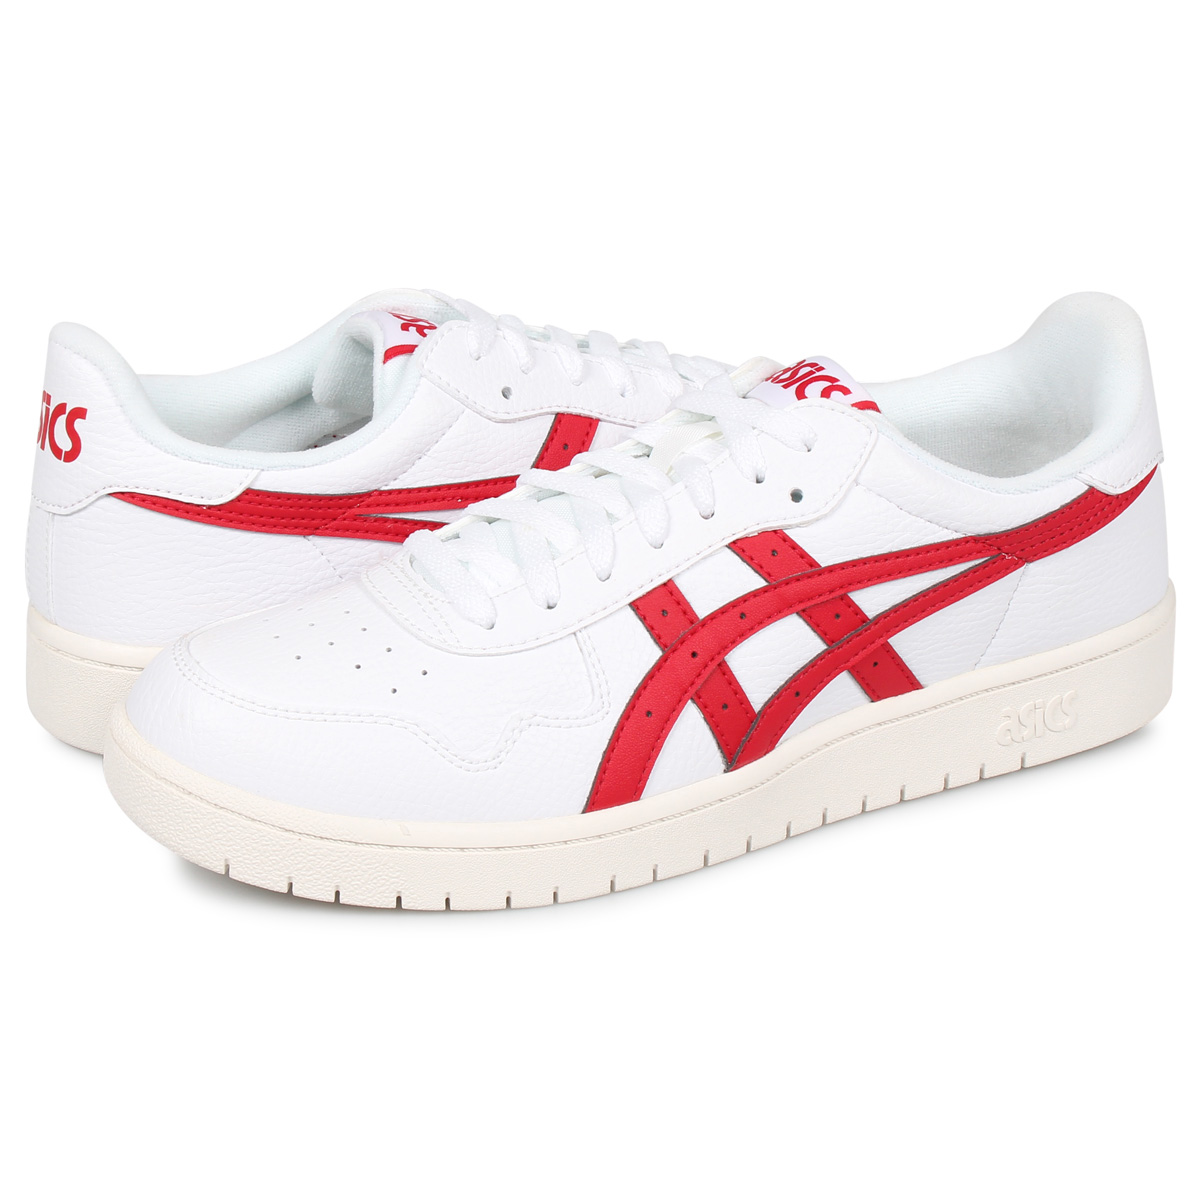 asics japan s shoes quito 100